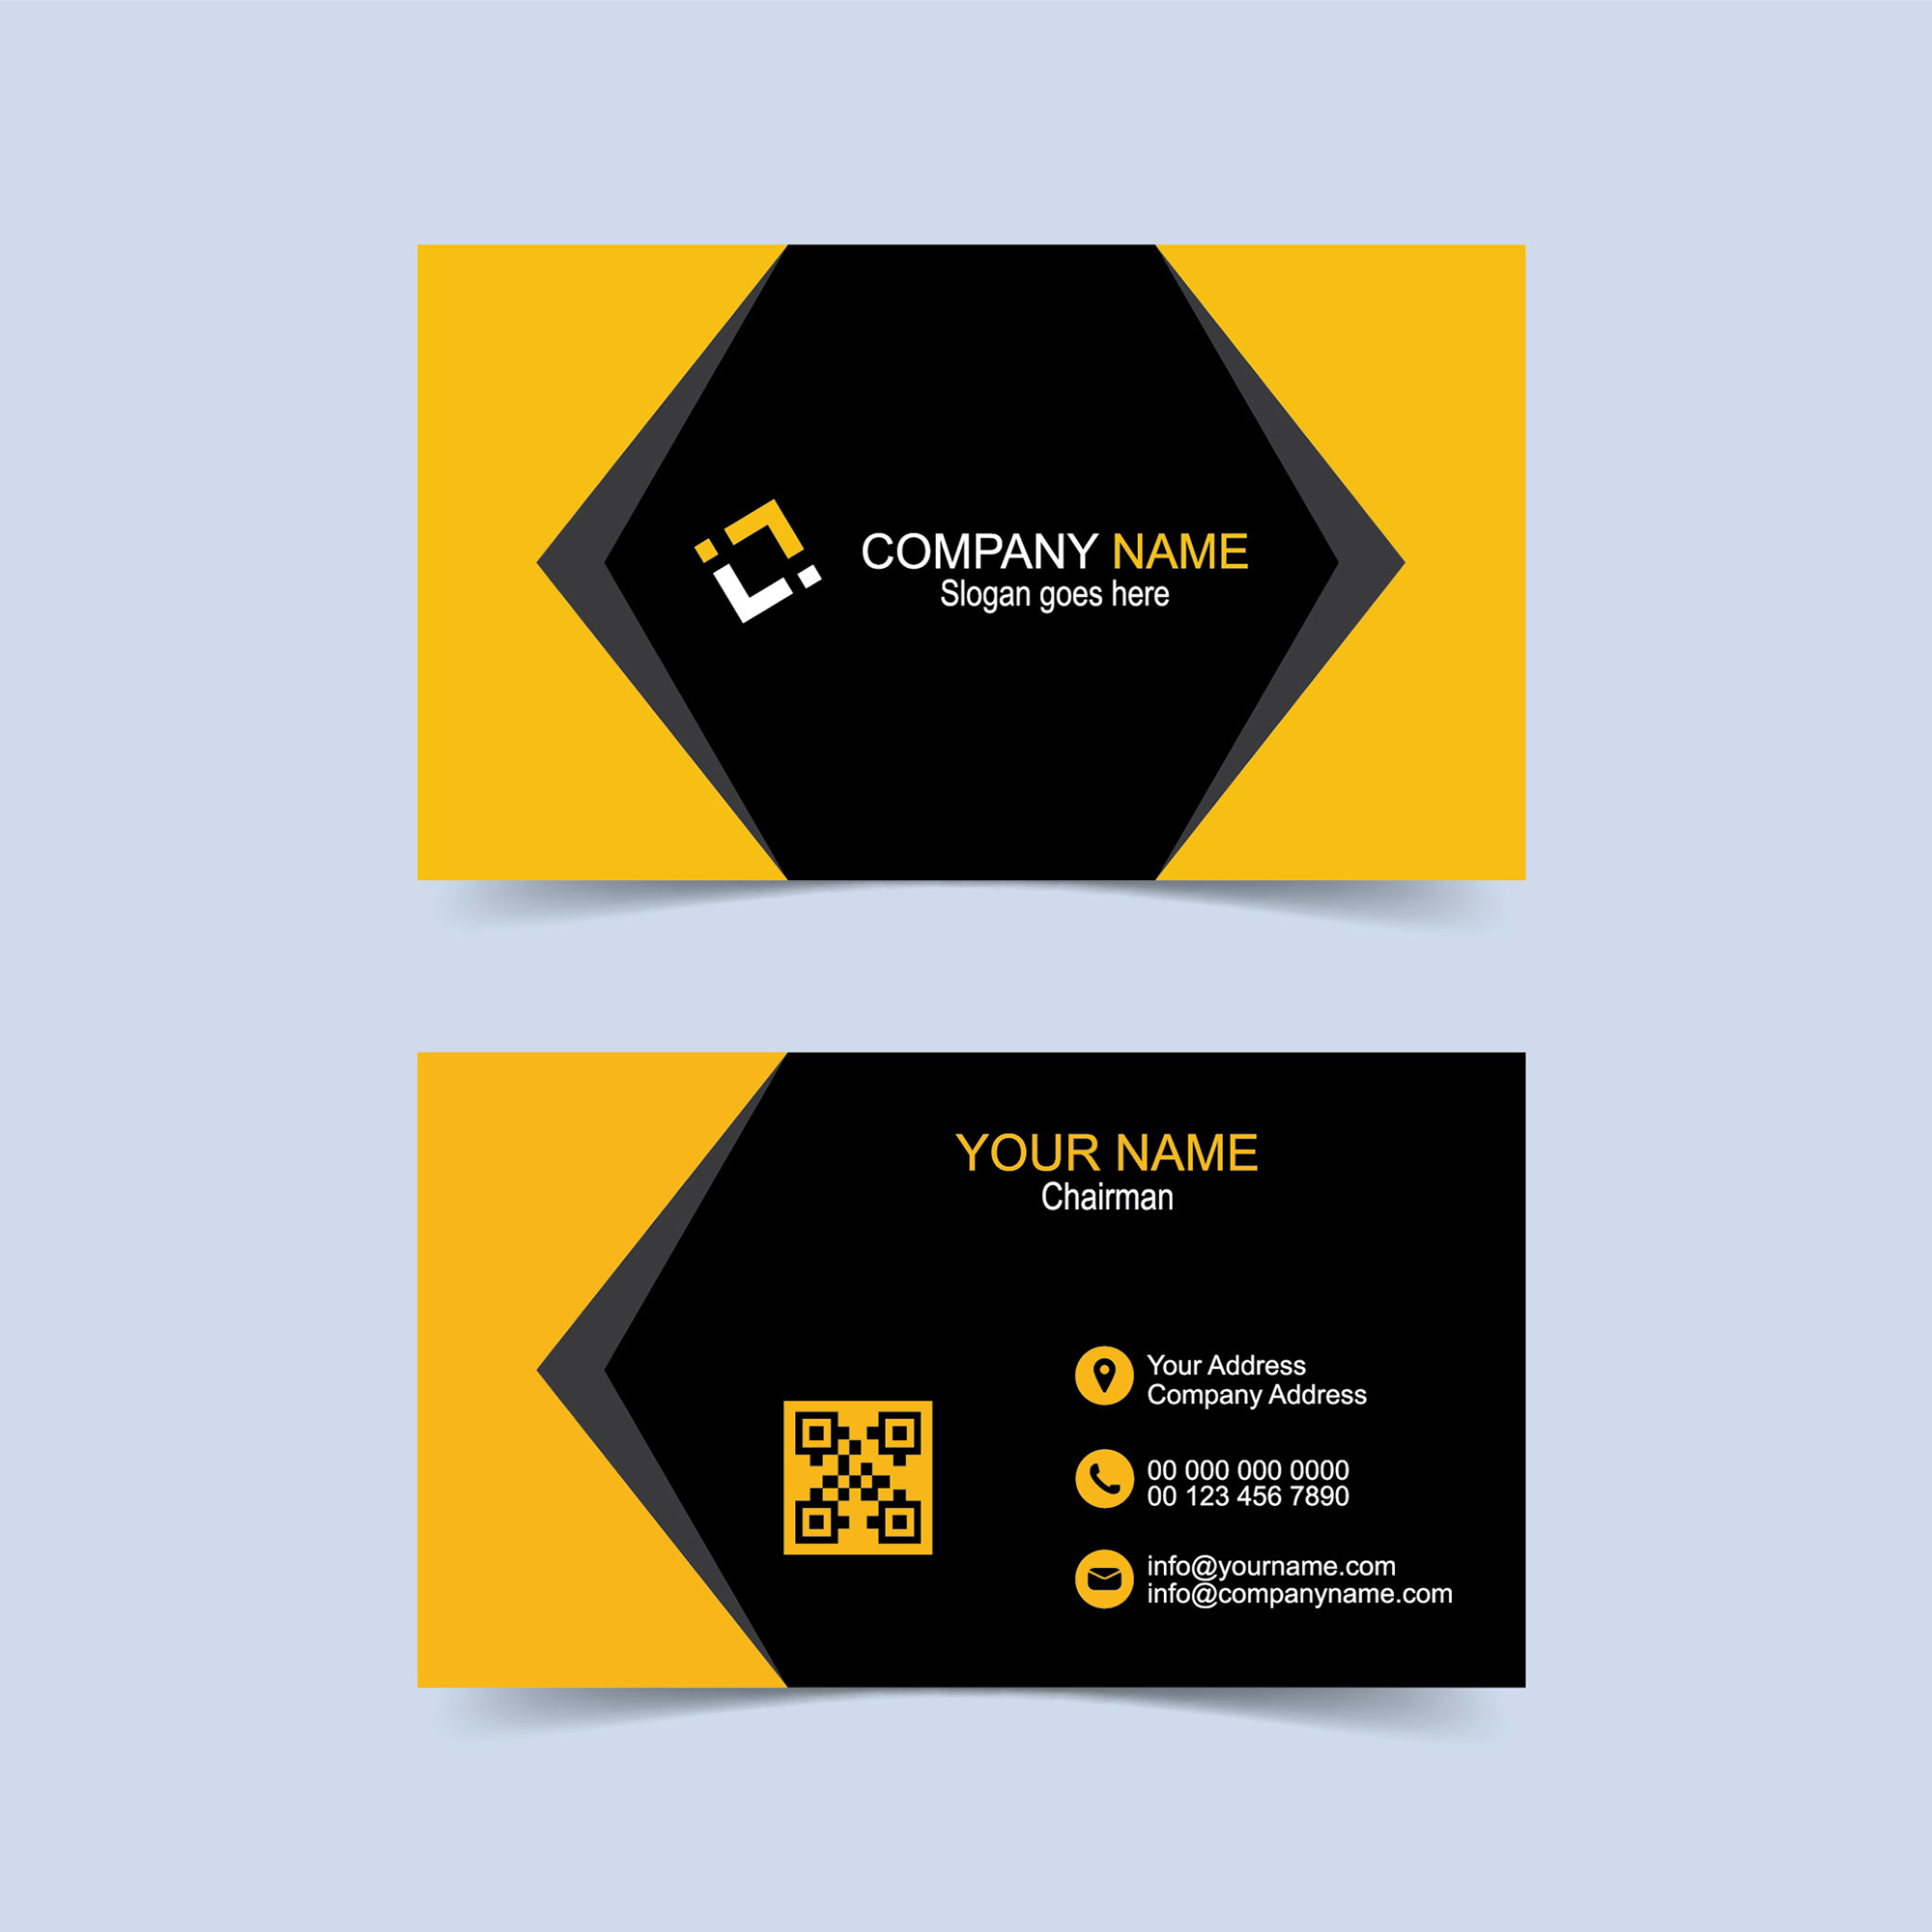 Free Business Card Design Download - Print Ready - Wisxi.com